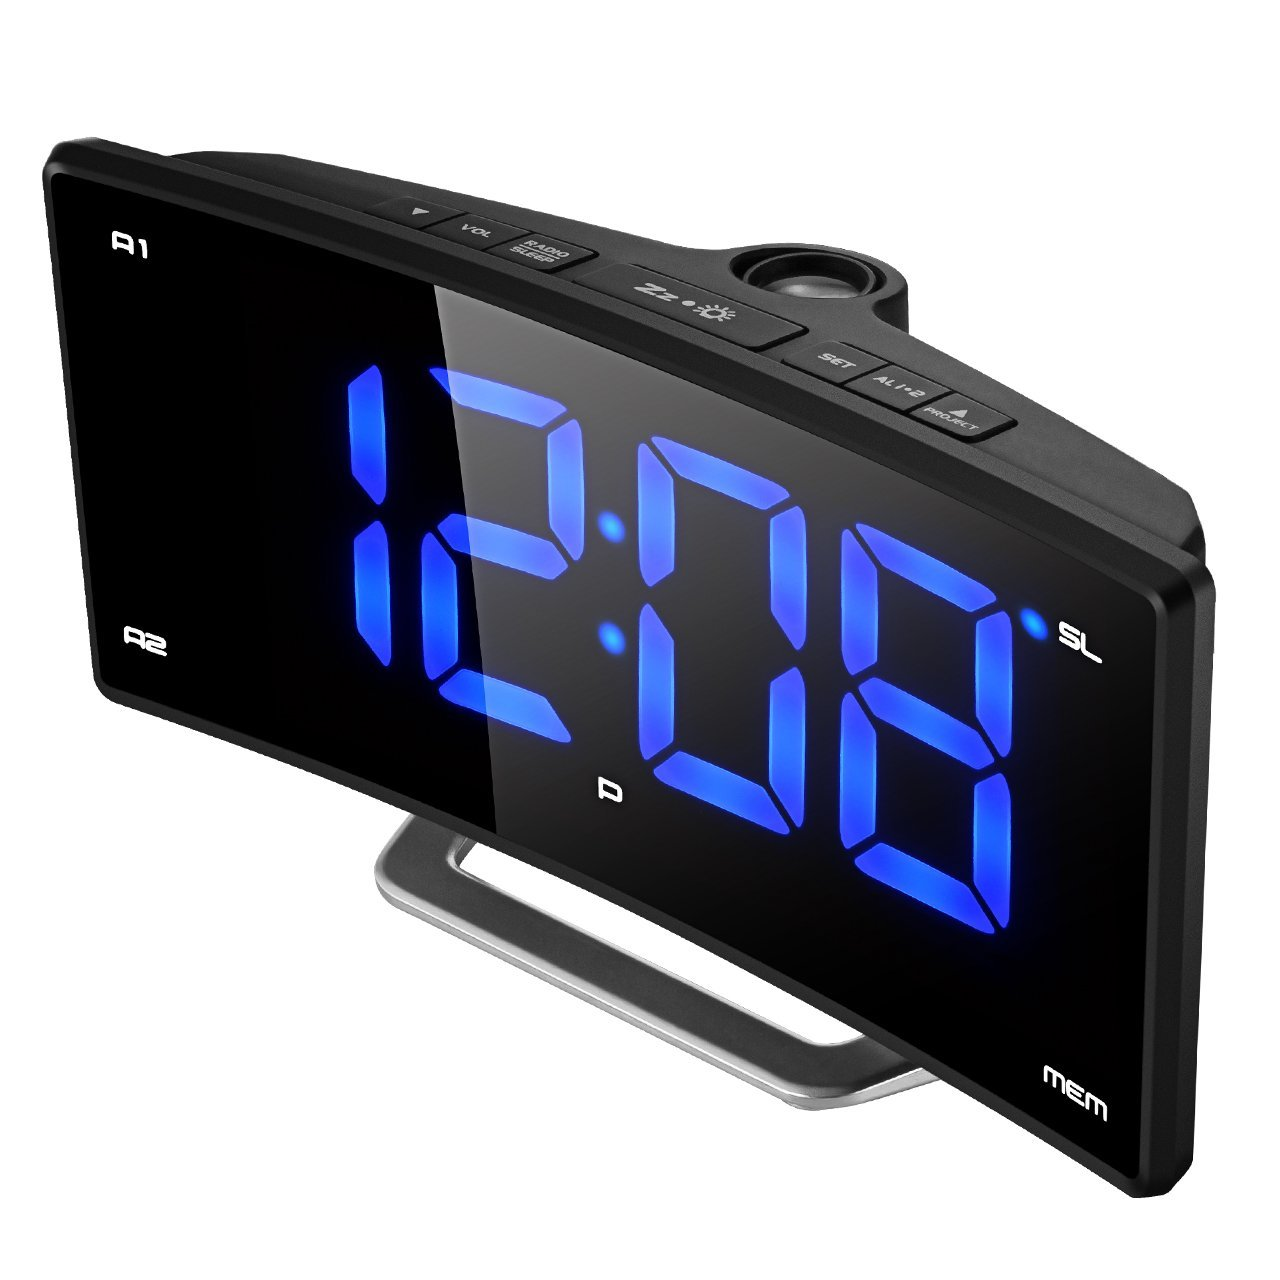 """Projection Clock, (New Version) Pictek FM Projection Alarm Clock, 2"""" LED Display Curved-Screen Digital FM Clock Radio with Dual Alarms, 12/24 Hour, USB Charging, Battery Backup"""